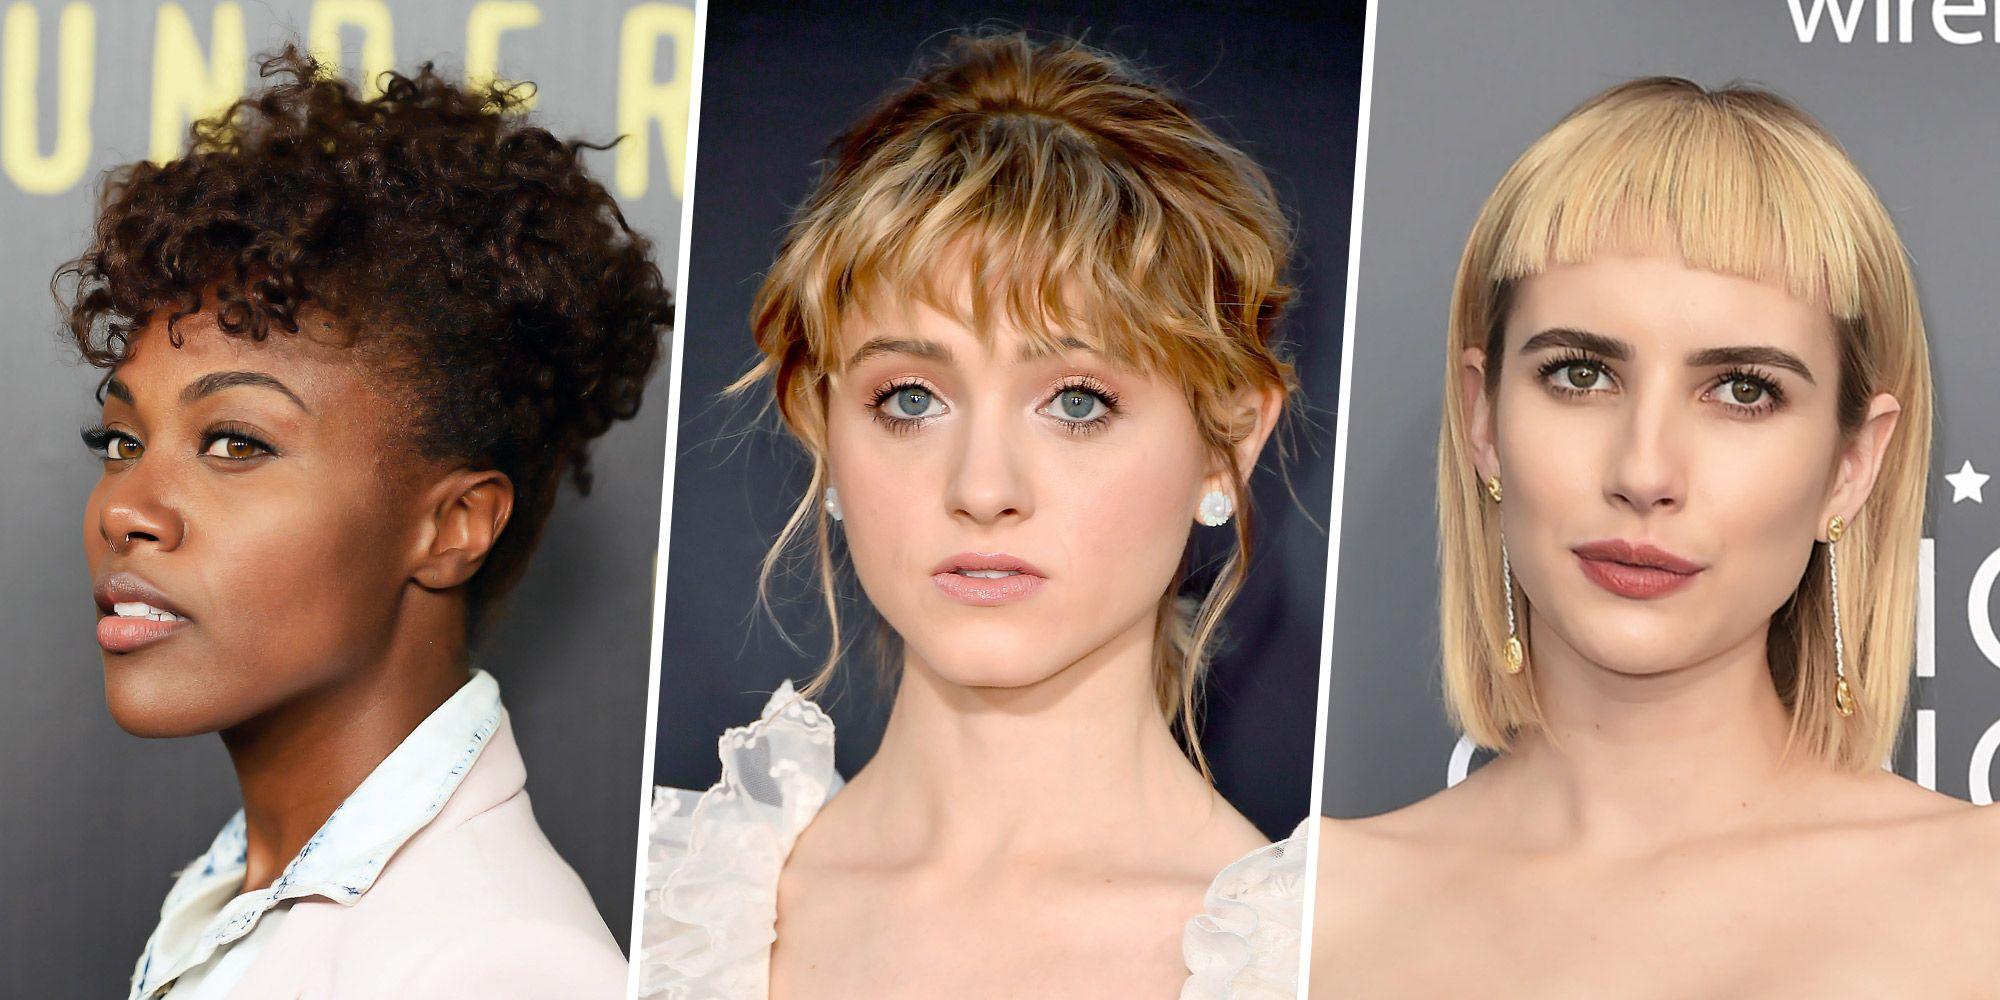 10 pretty bangs trends of 2018 - new bangs hairstyles & ideas for women